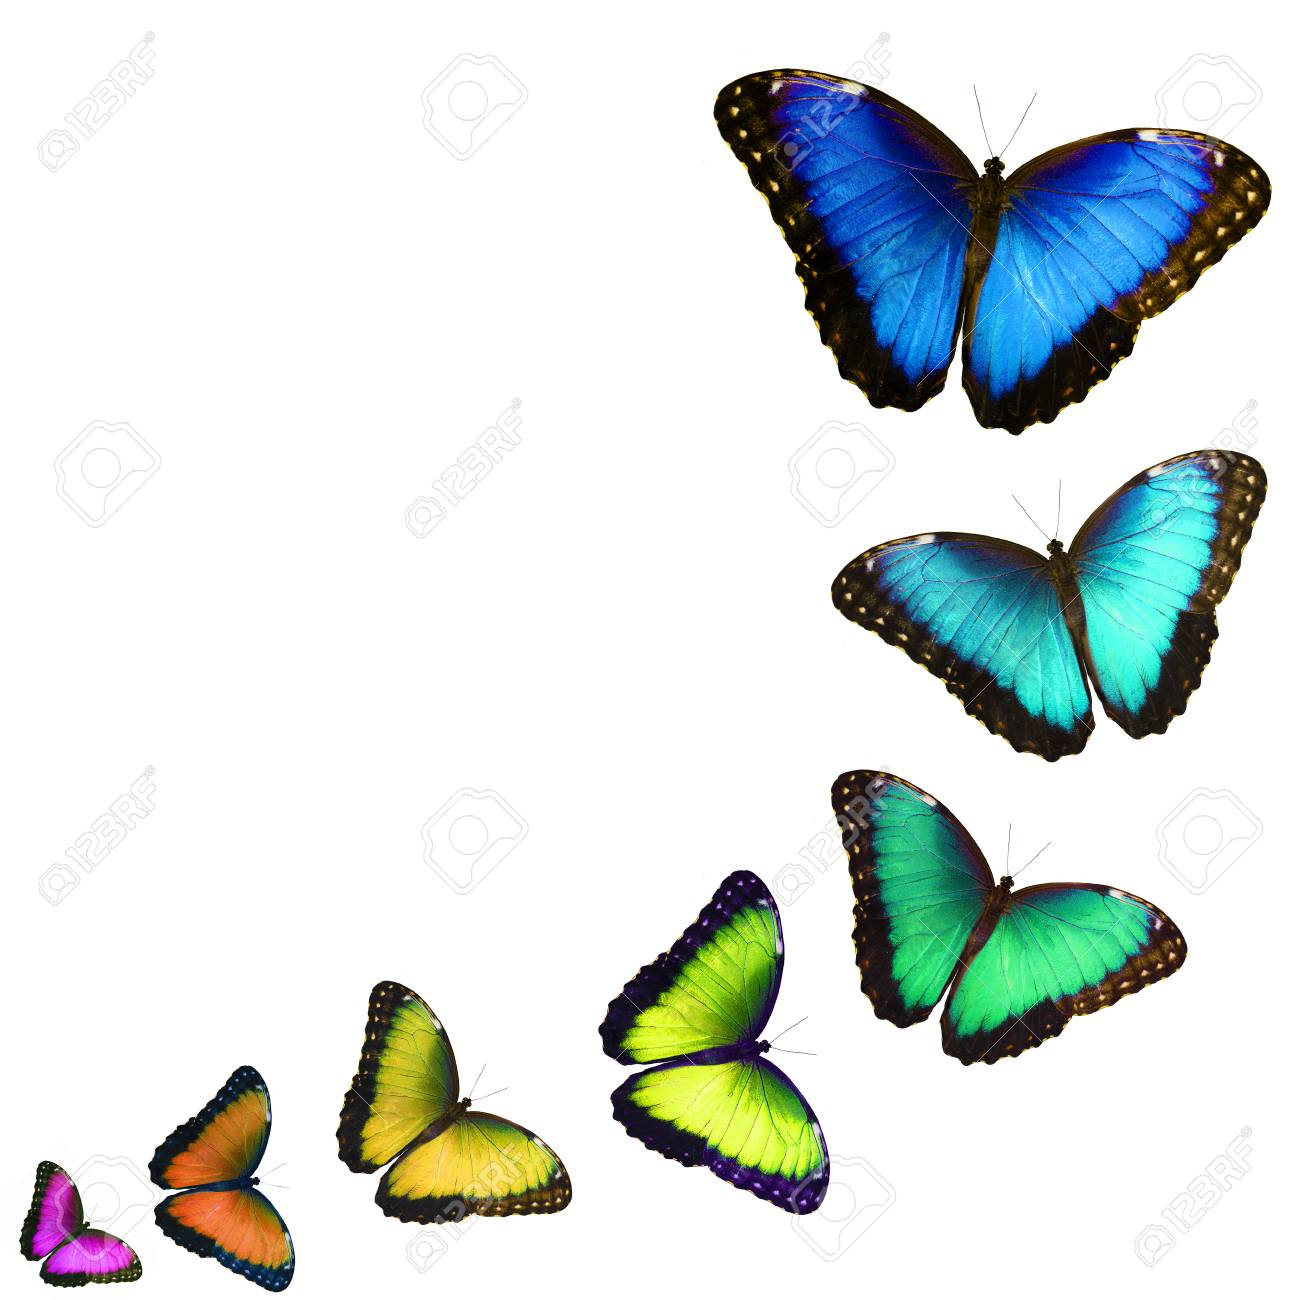 photo a postcard with colorful butterflies isolated on white background the butterflies fly one by one in